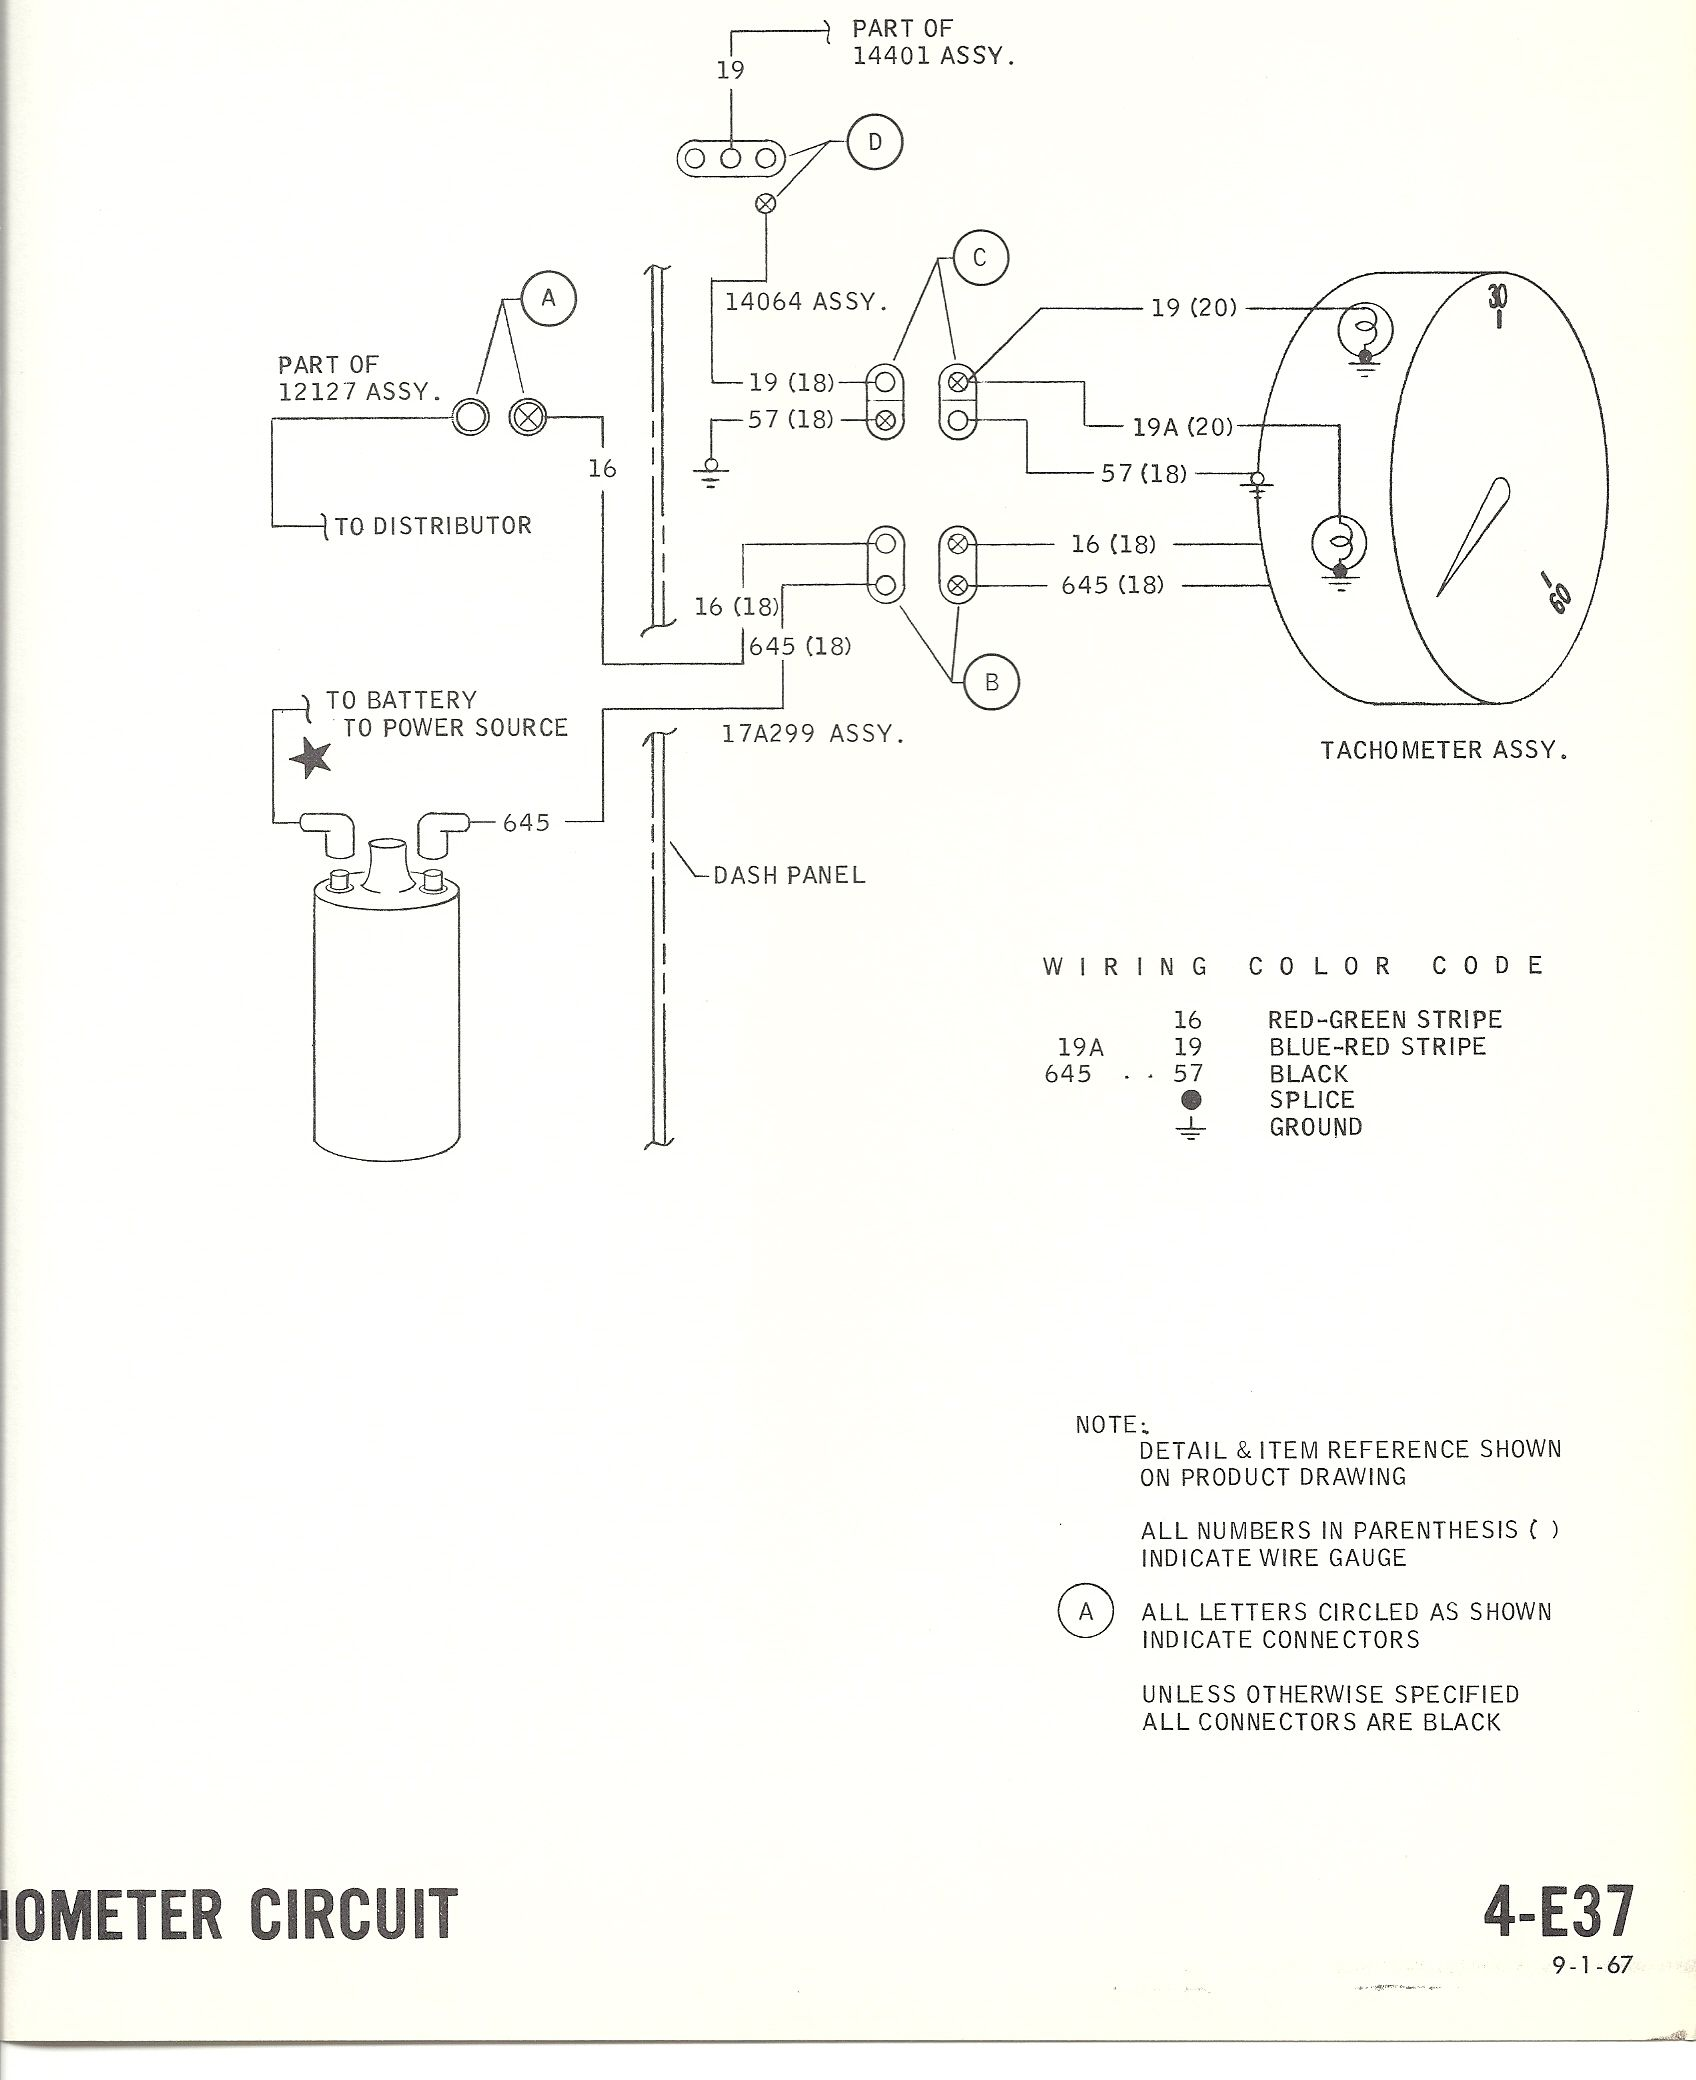 2b2f8e488a4c6a6b870c00f5af30de6c 67 mustang wiring diagram 1965 mustang wiring harness diagram  at webbmarketing.co